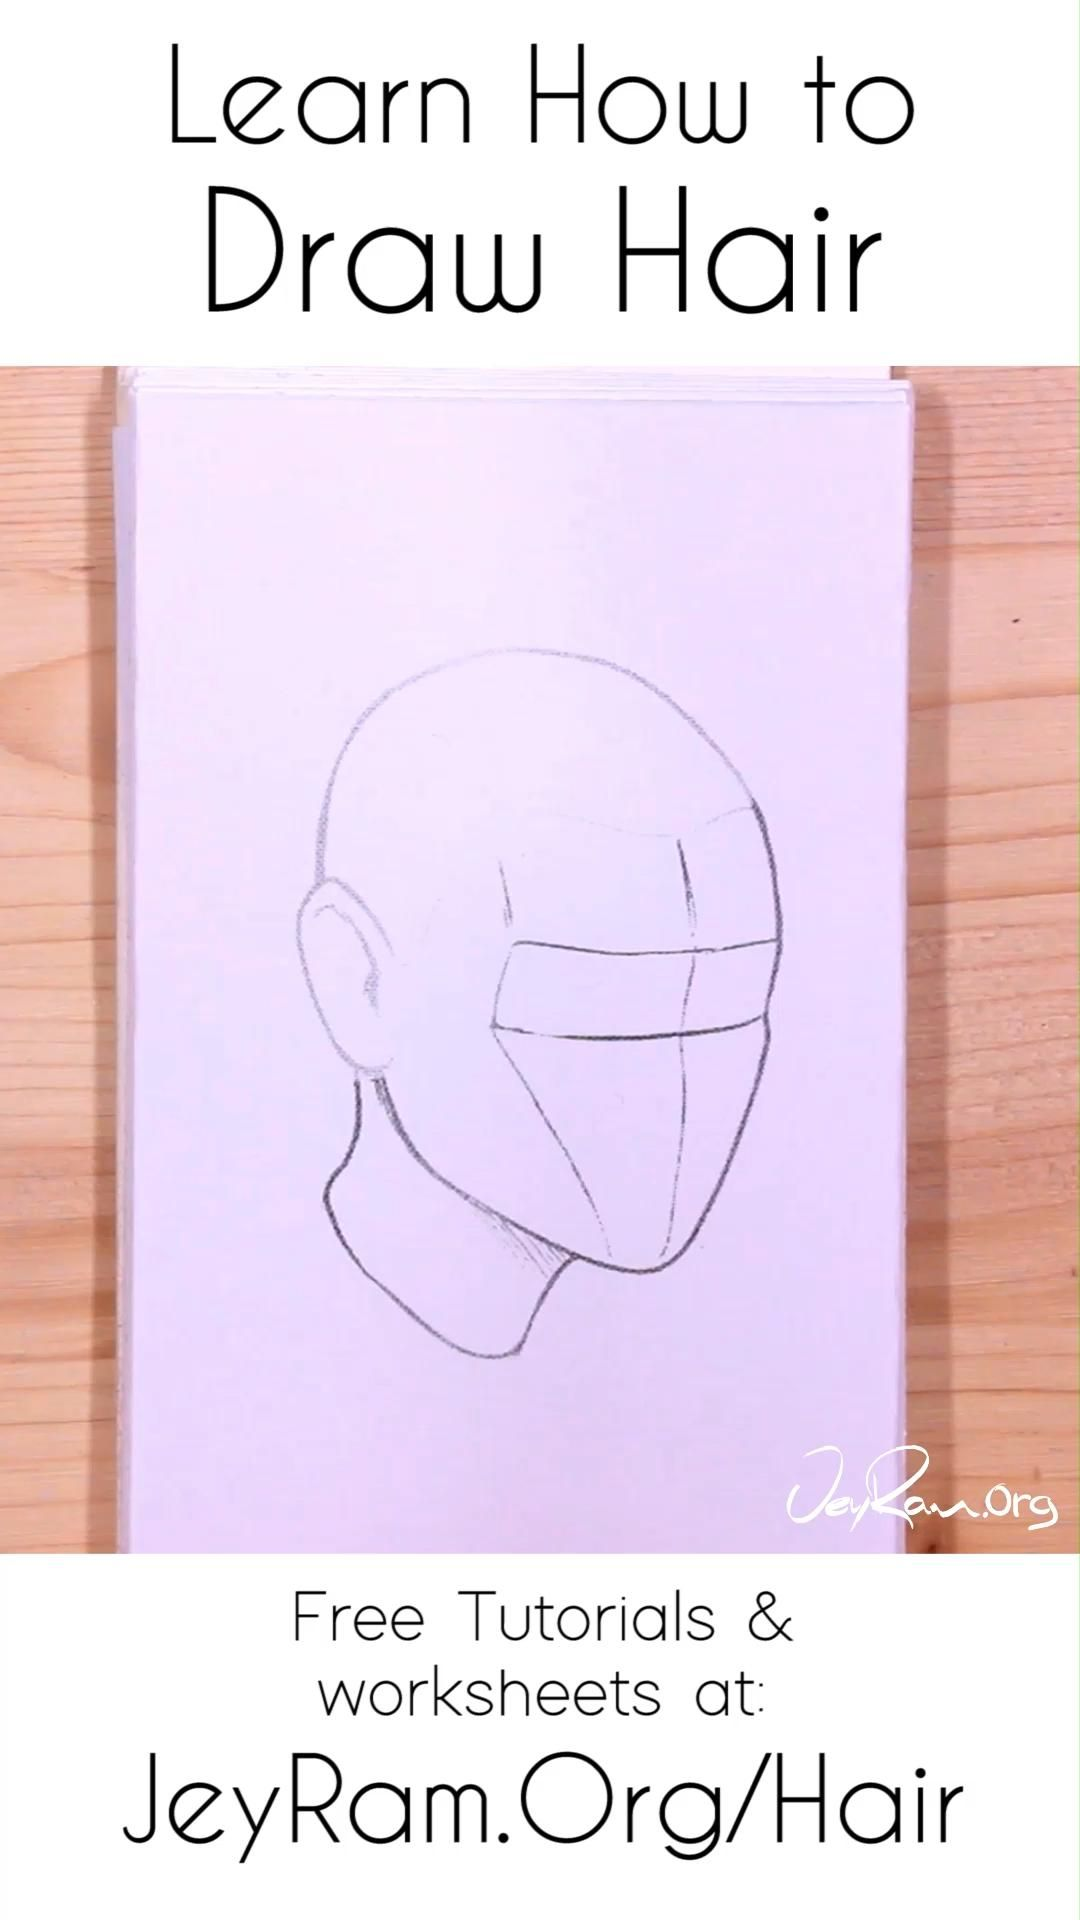 How To Draw Hair Tutorials Worksheets And References Video In 2020 How To Draw Hair How To Draw Anime Hair Drawings